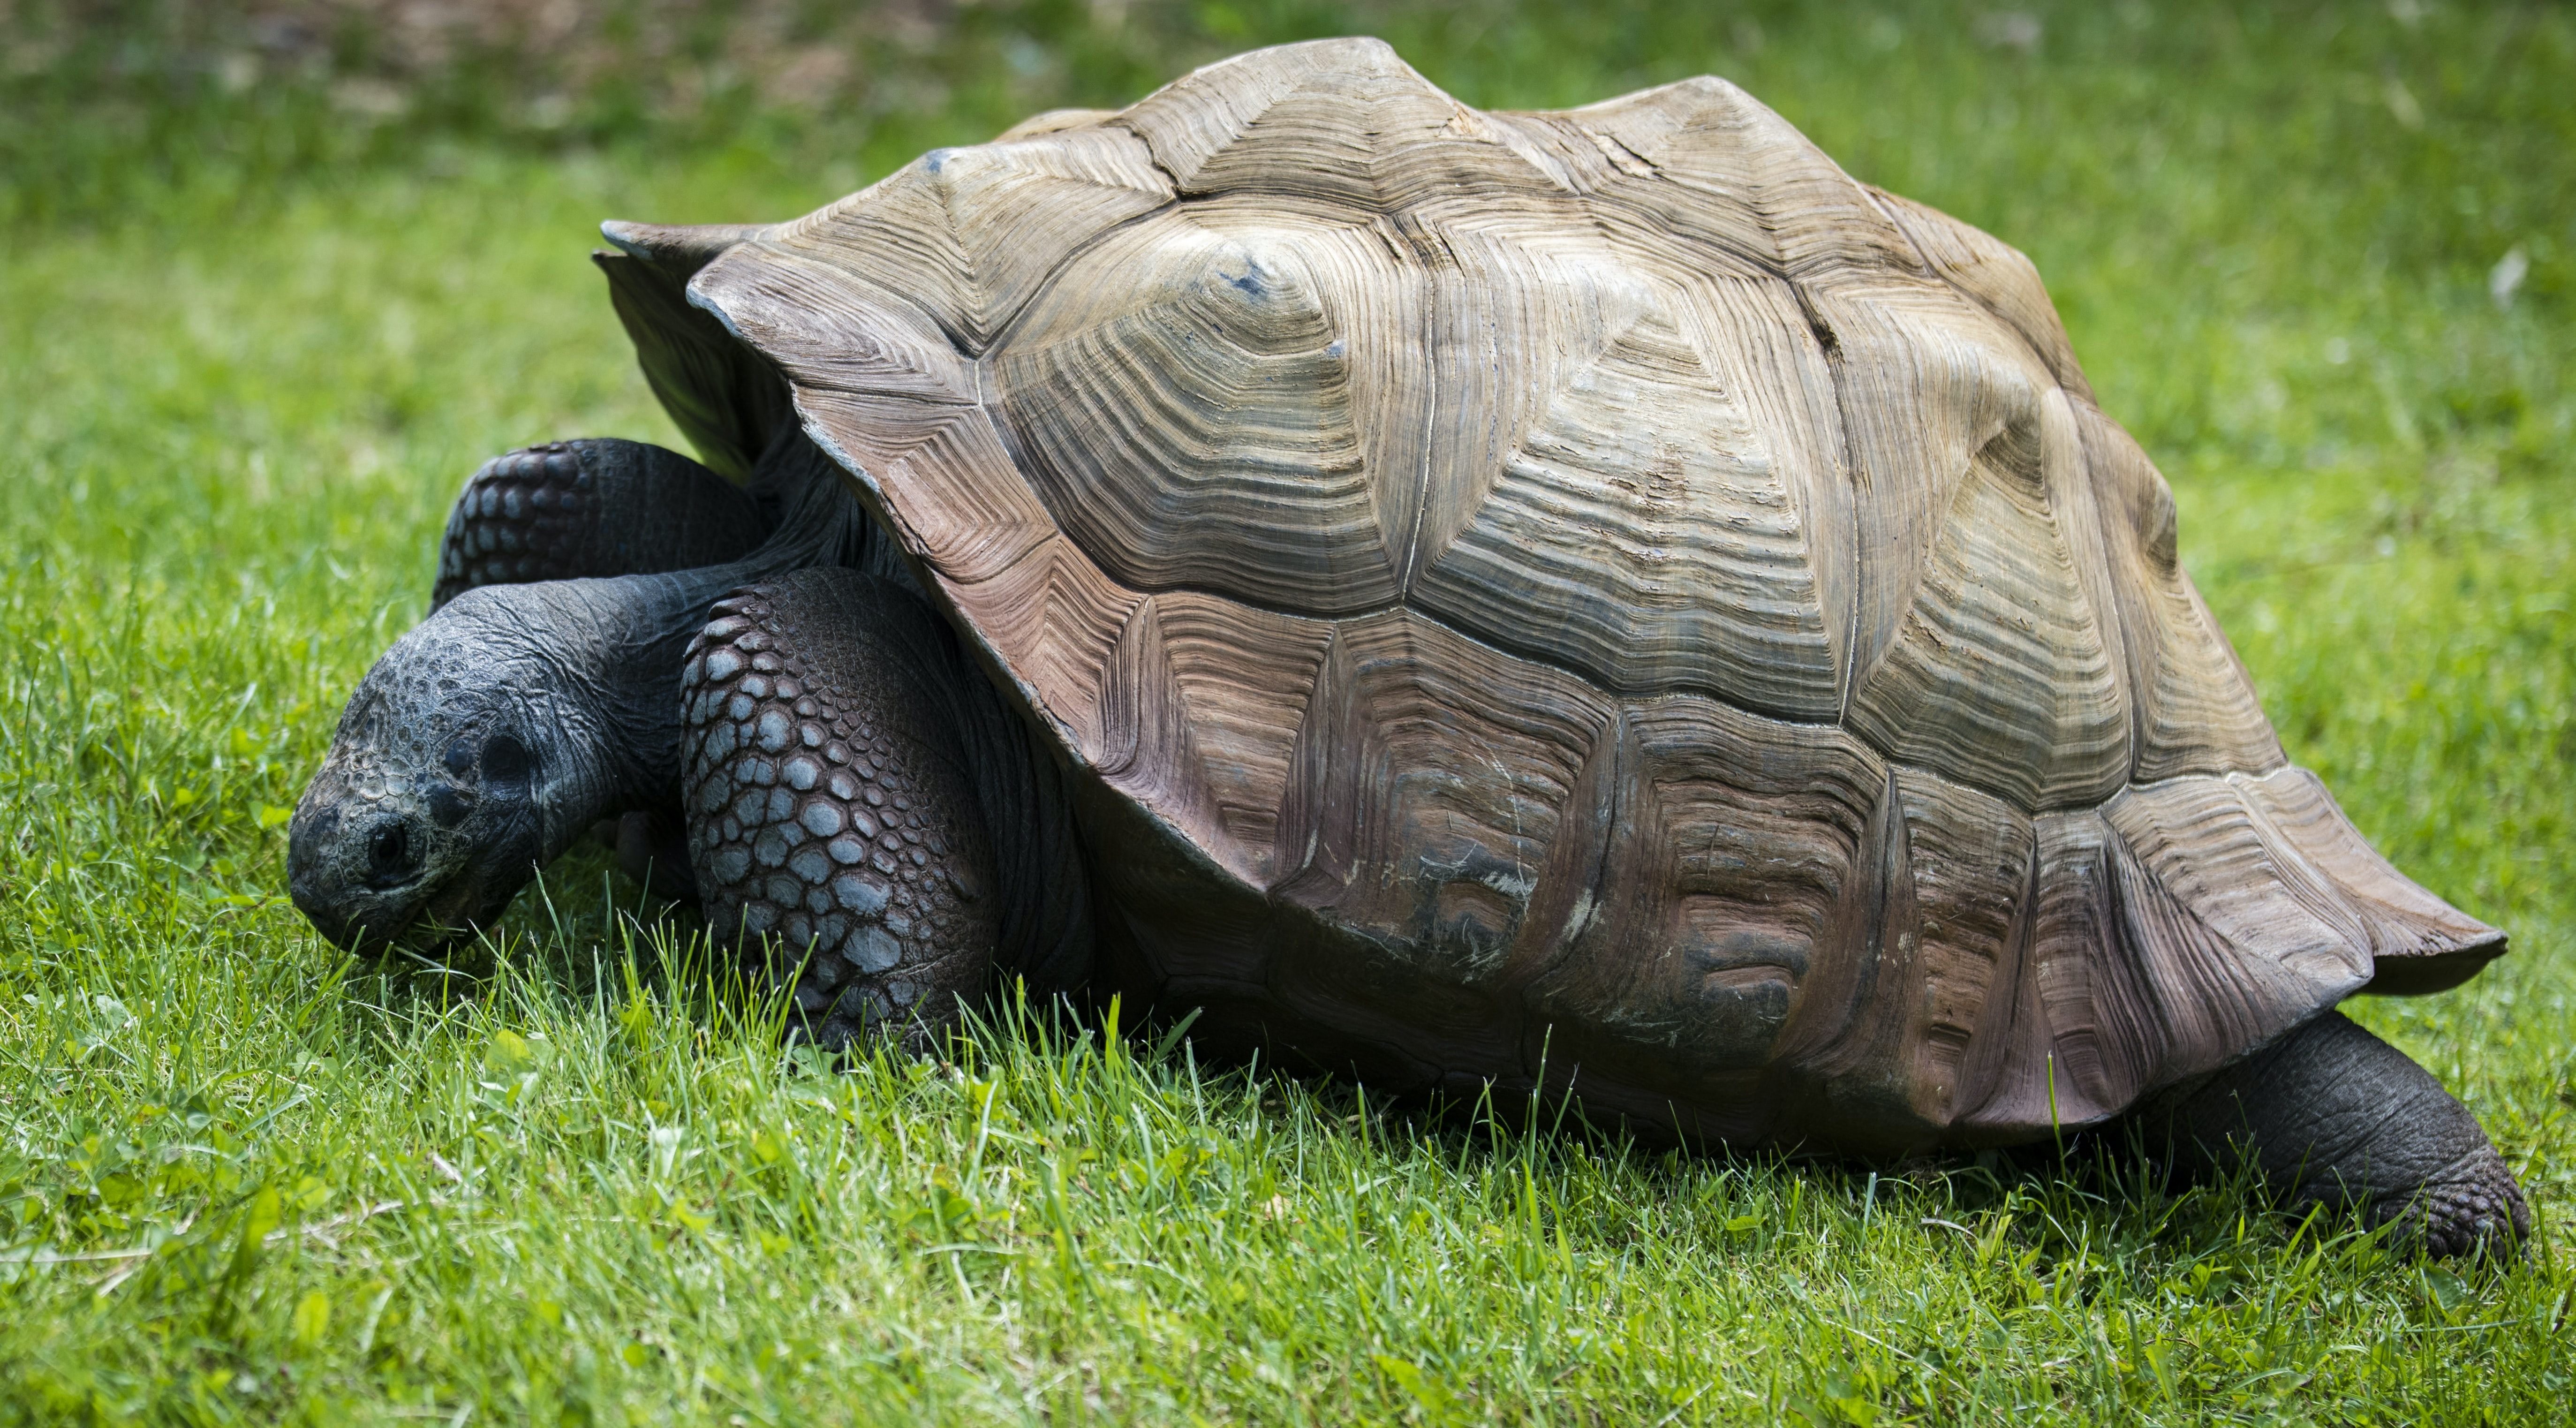 brown and gray turtle in green grass at daytime